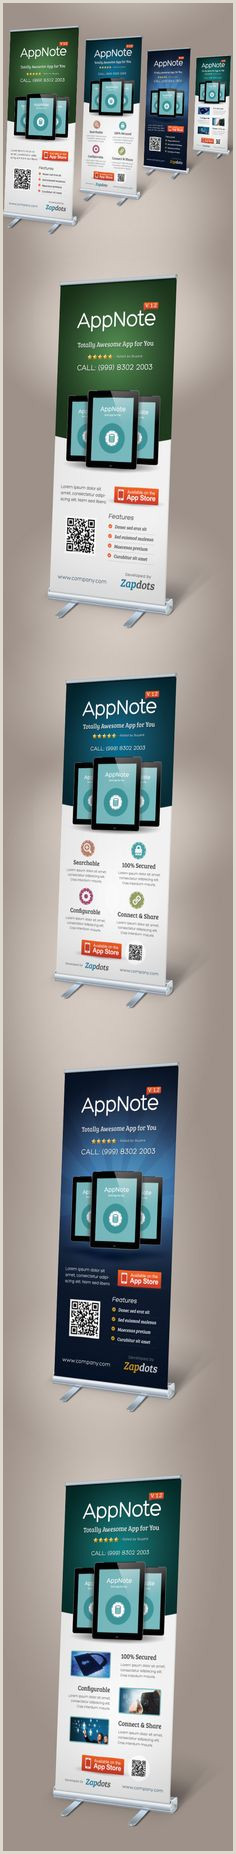 Roll Up Banner Size In Inches 30 Best Roll Up Banners Images